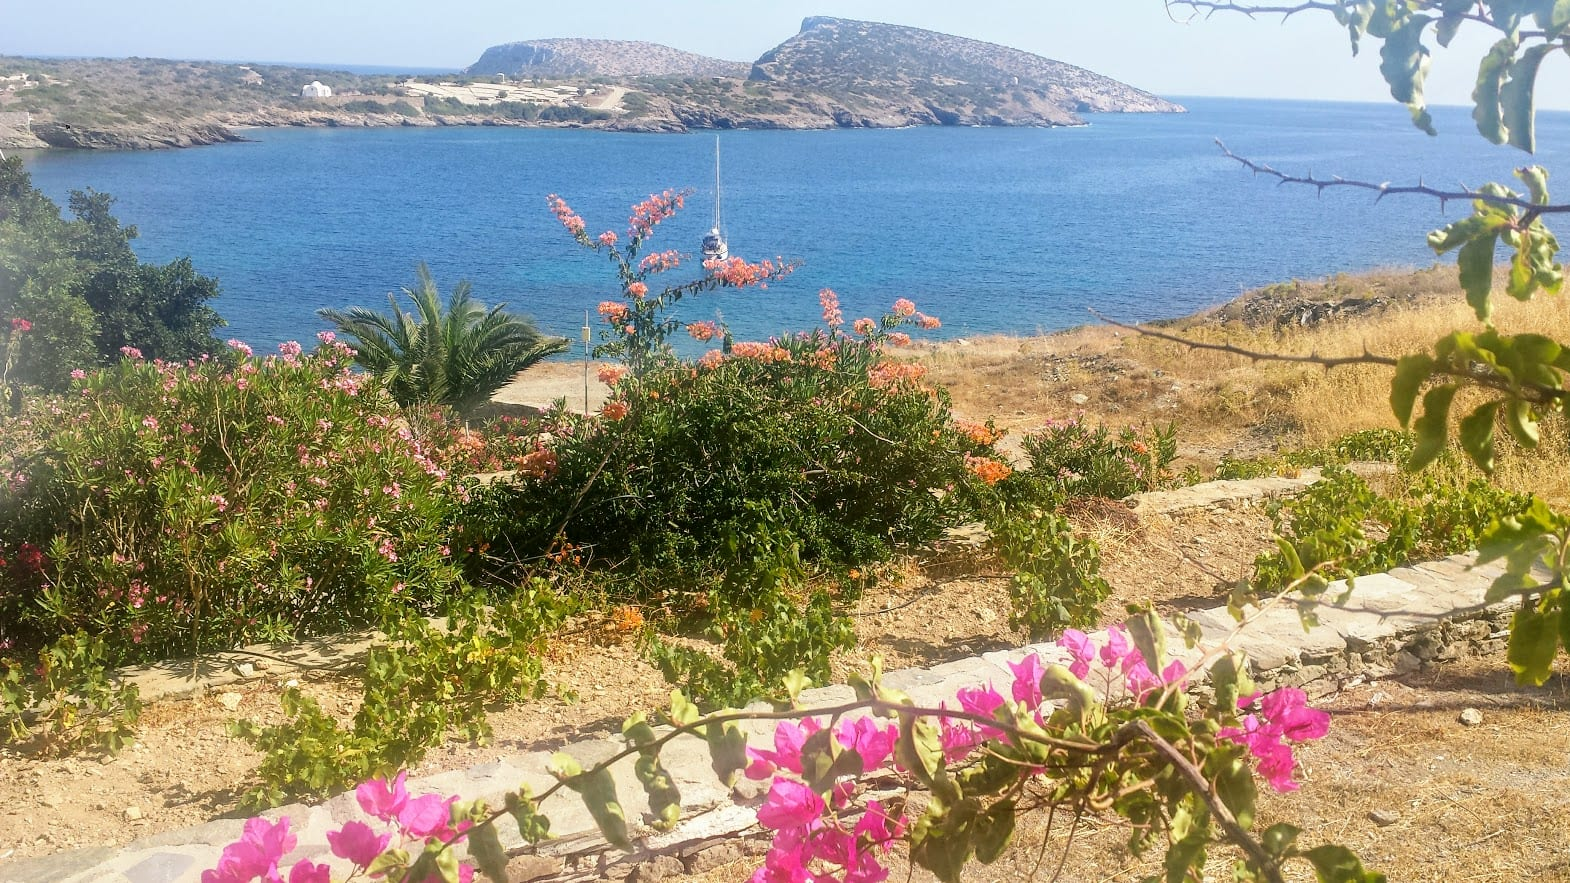 A view over a bay in Schinoussa